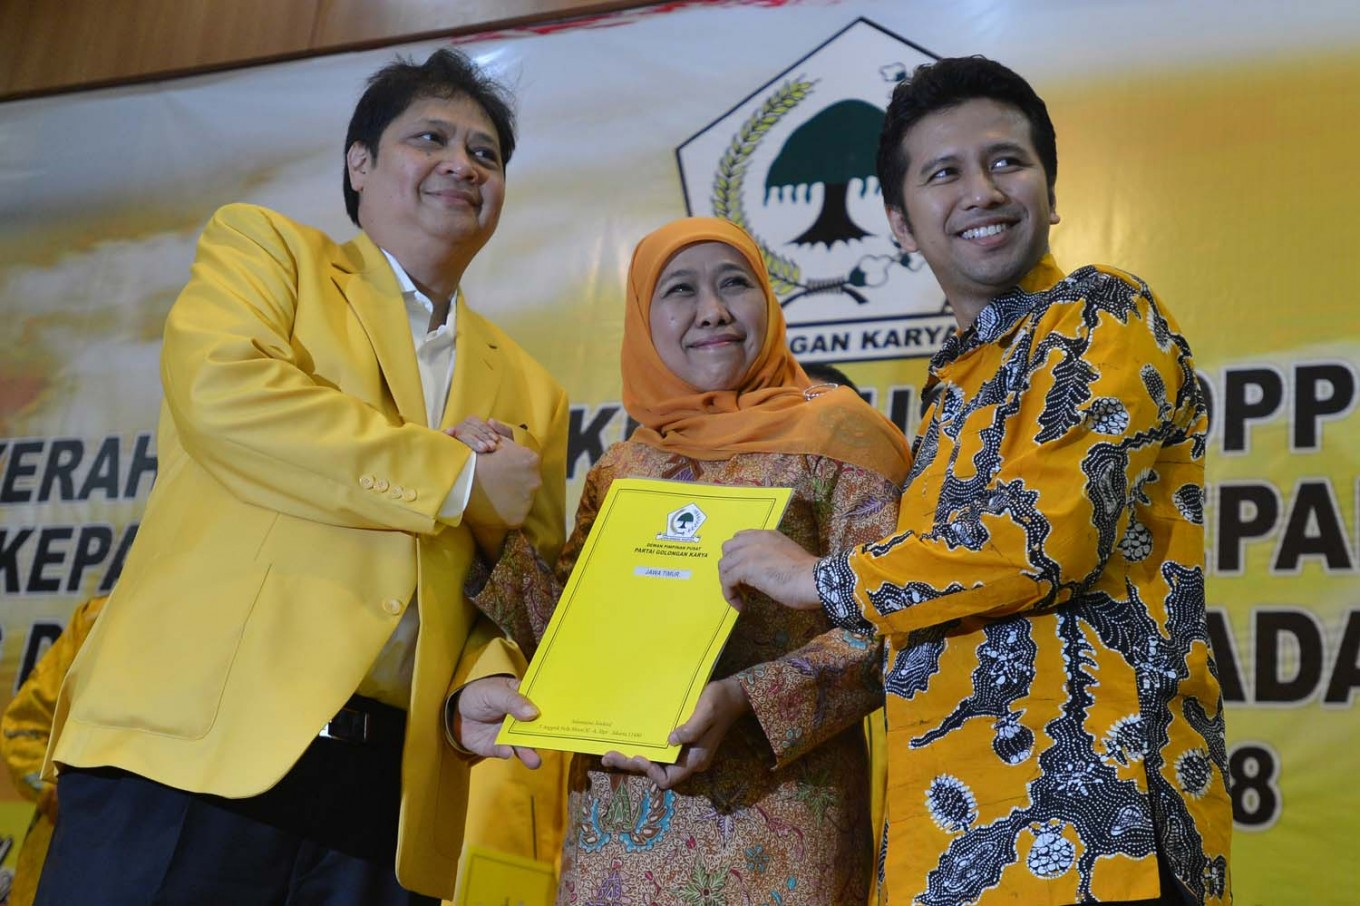 Parties ask Khofifah-Emil to support Jokowi in 2019 election